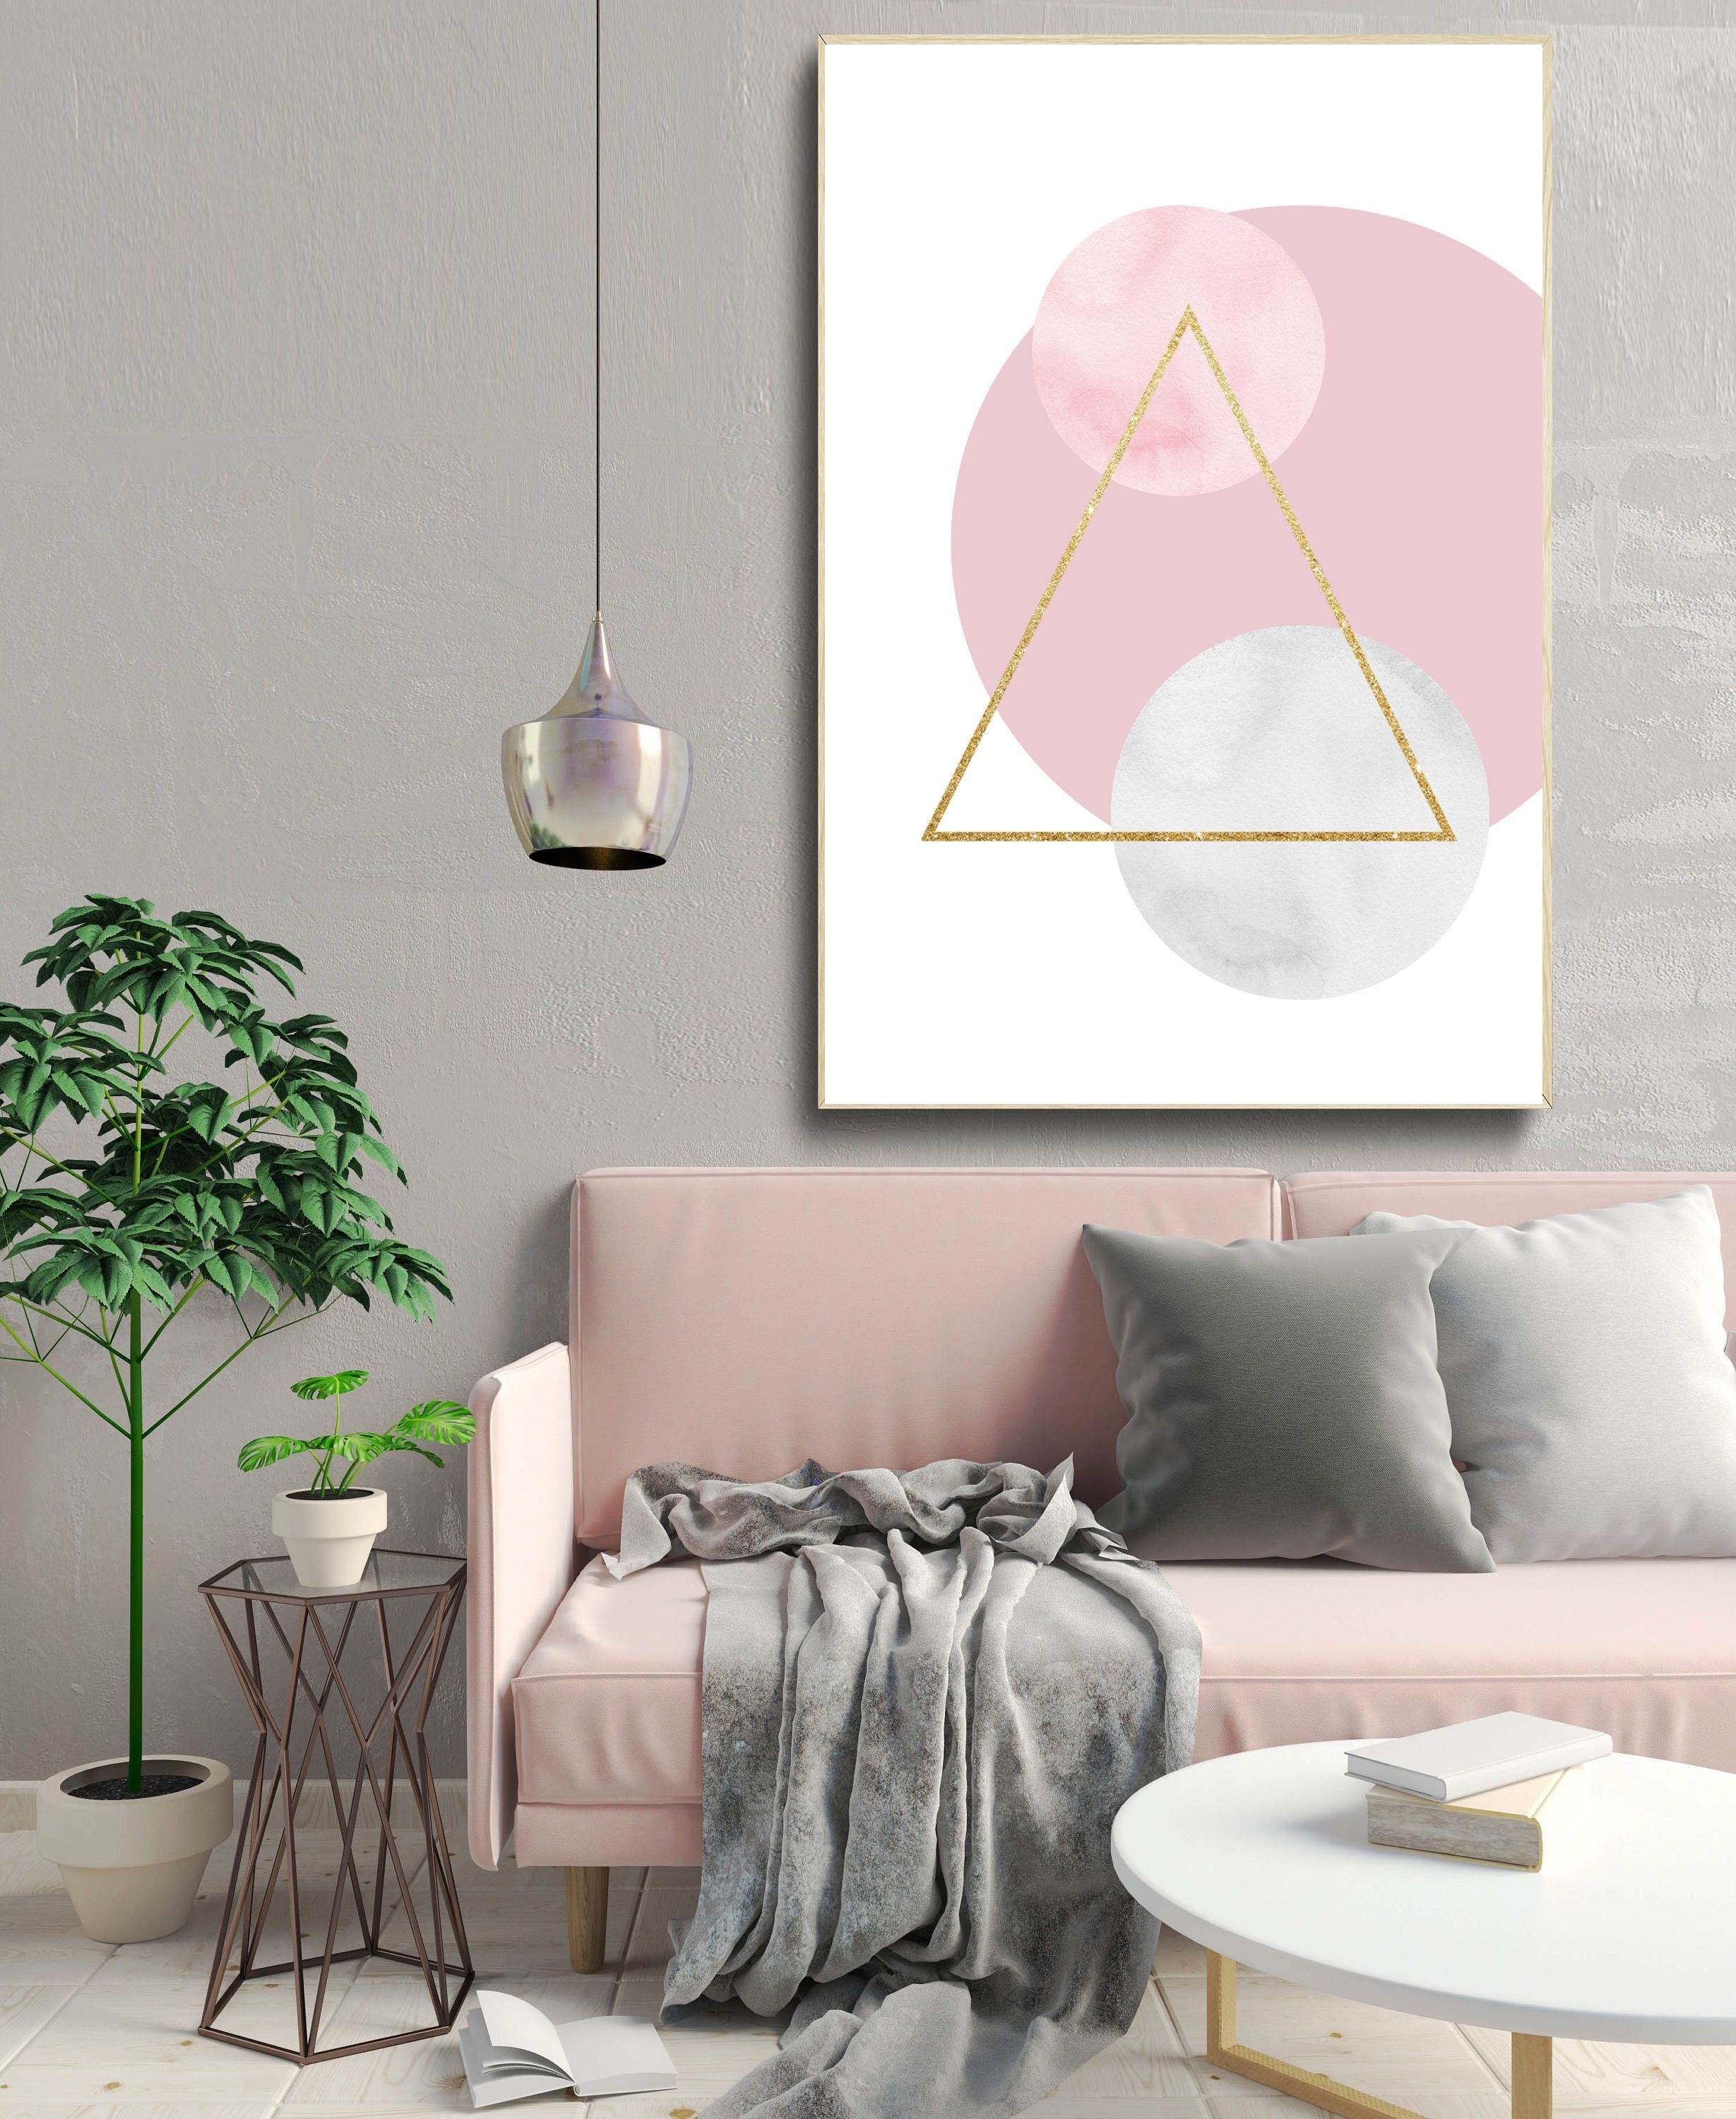 Geometric Abstract Art Print, Shapes Wall Art, Nordic Design Inside Latest Scandinavian Fabric Wall Art (View 10 of 15)